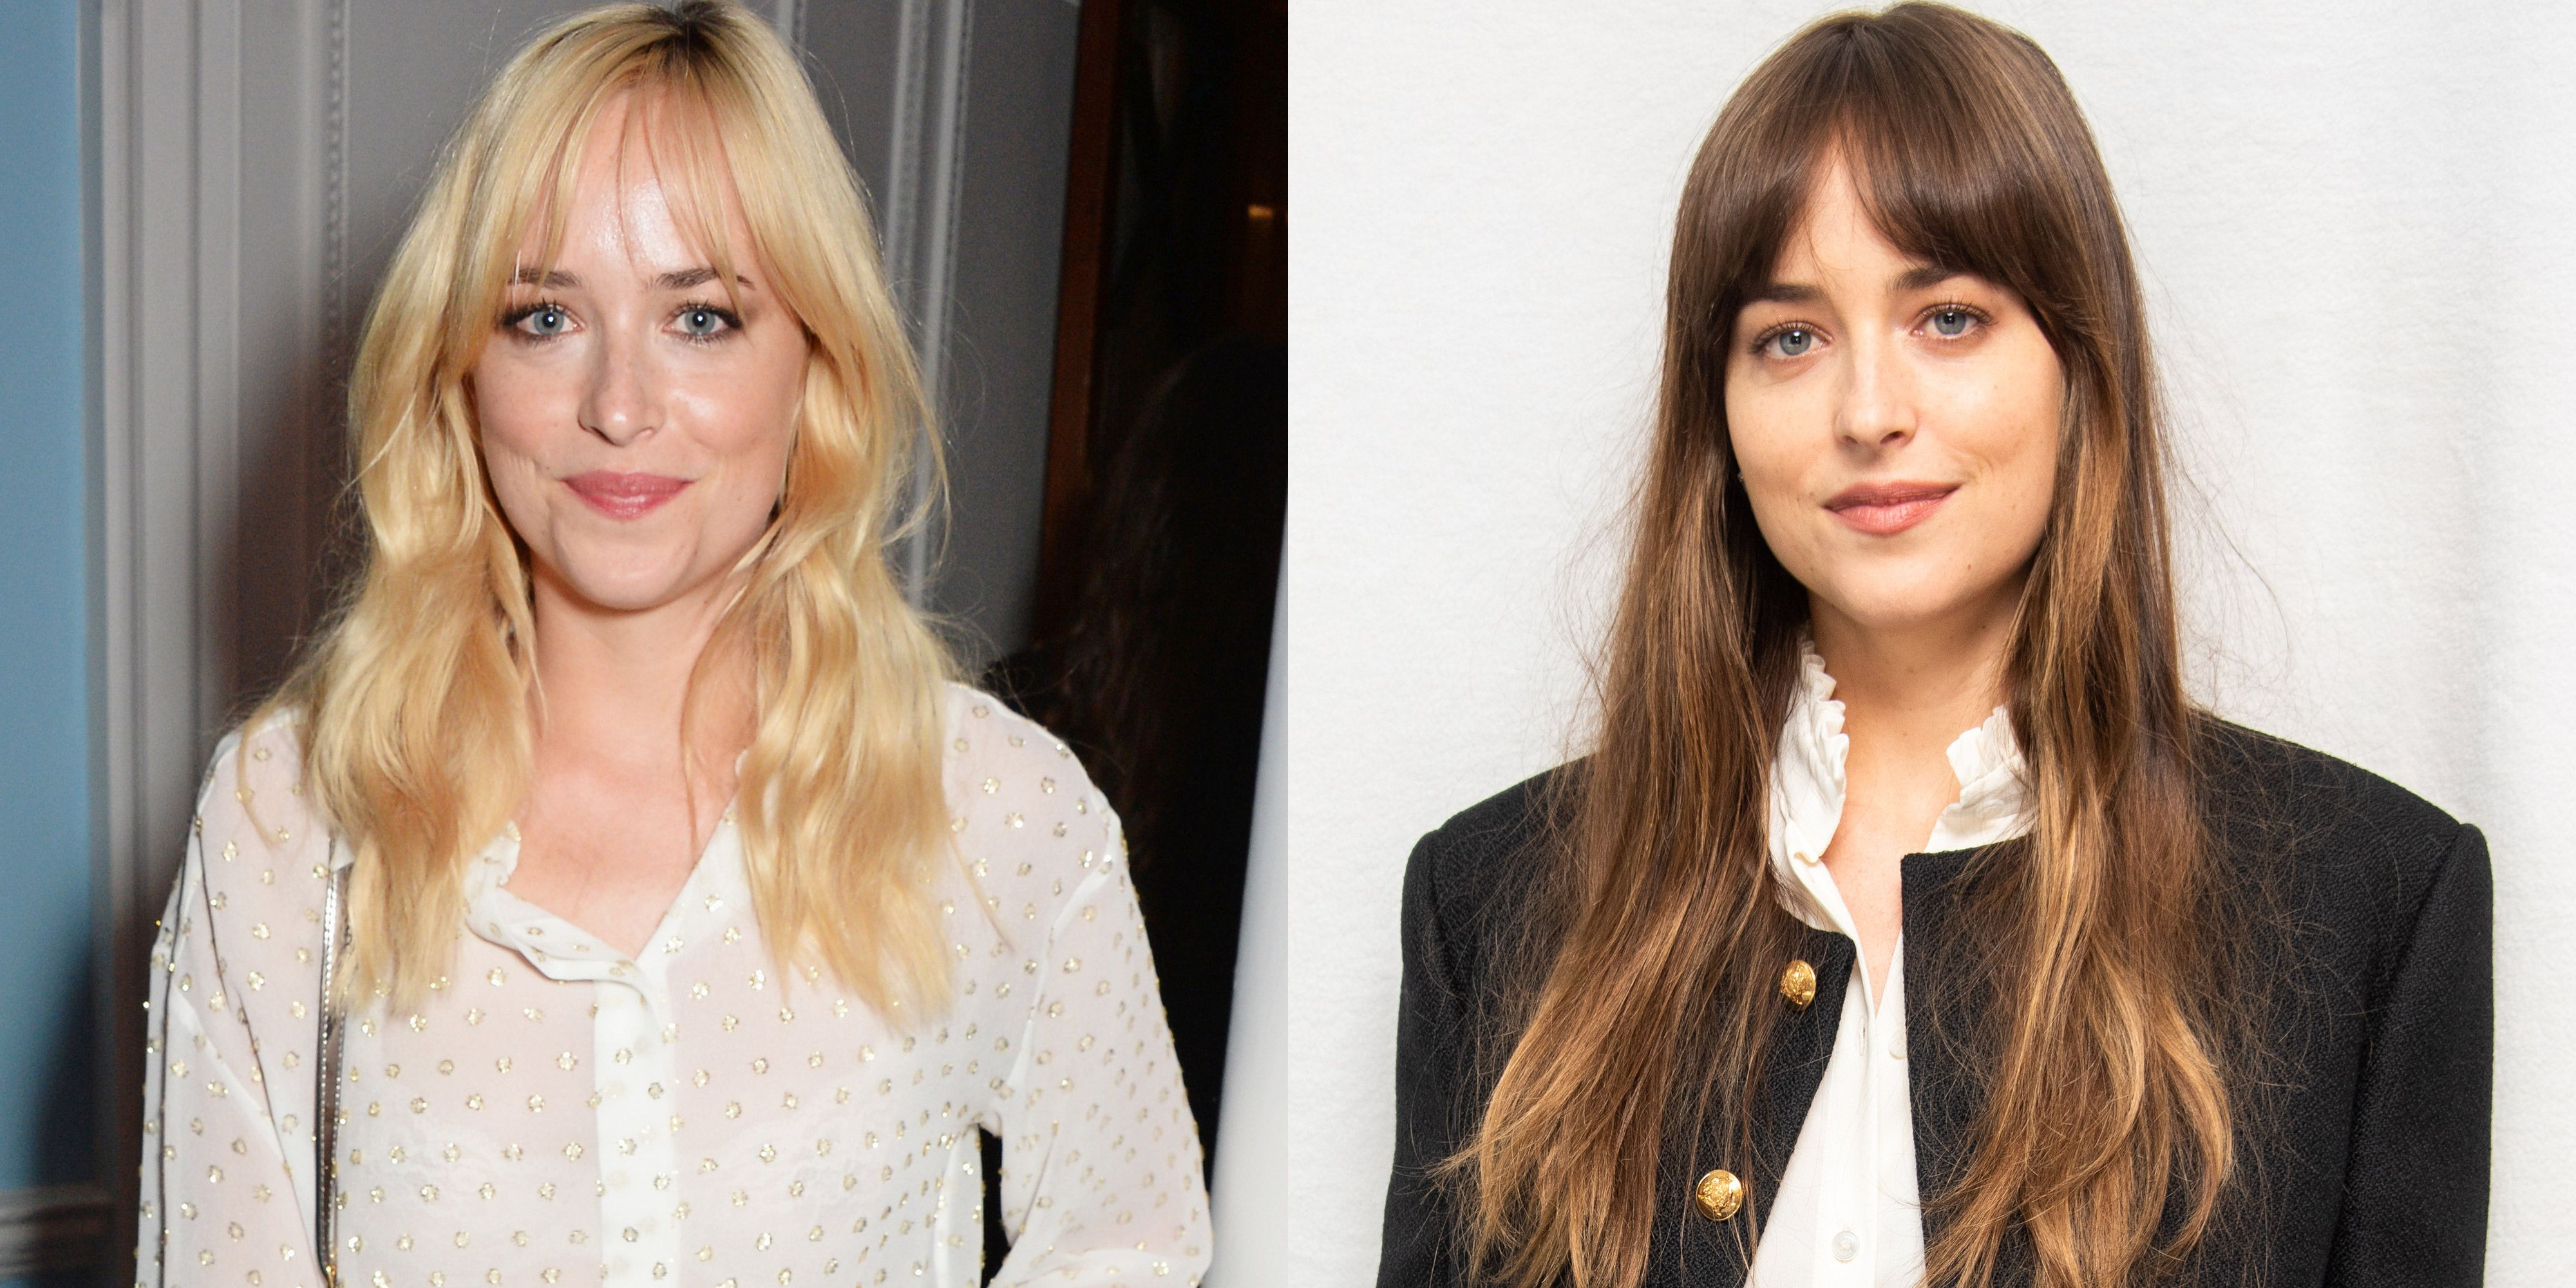 Blonde vs. Brunette: Celebs Who Made the Switch